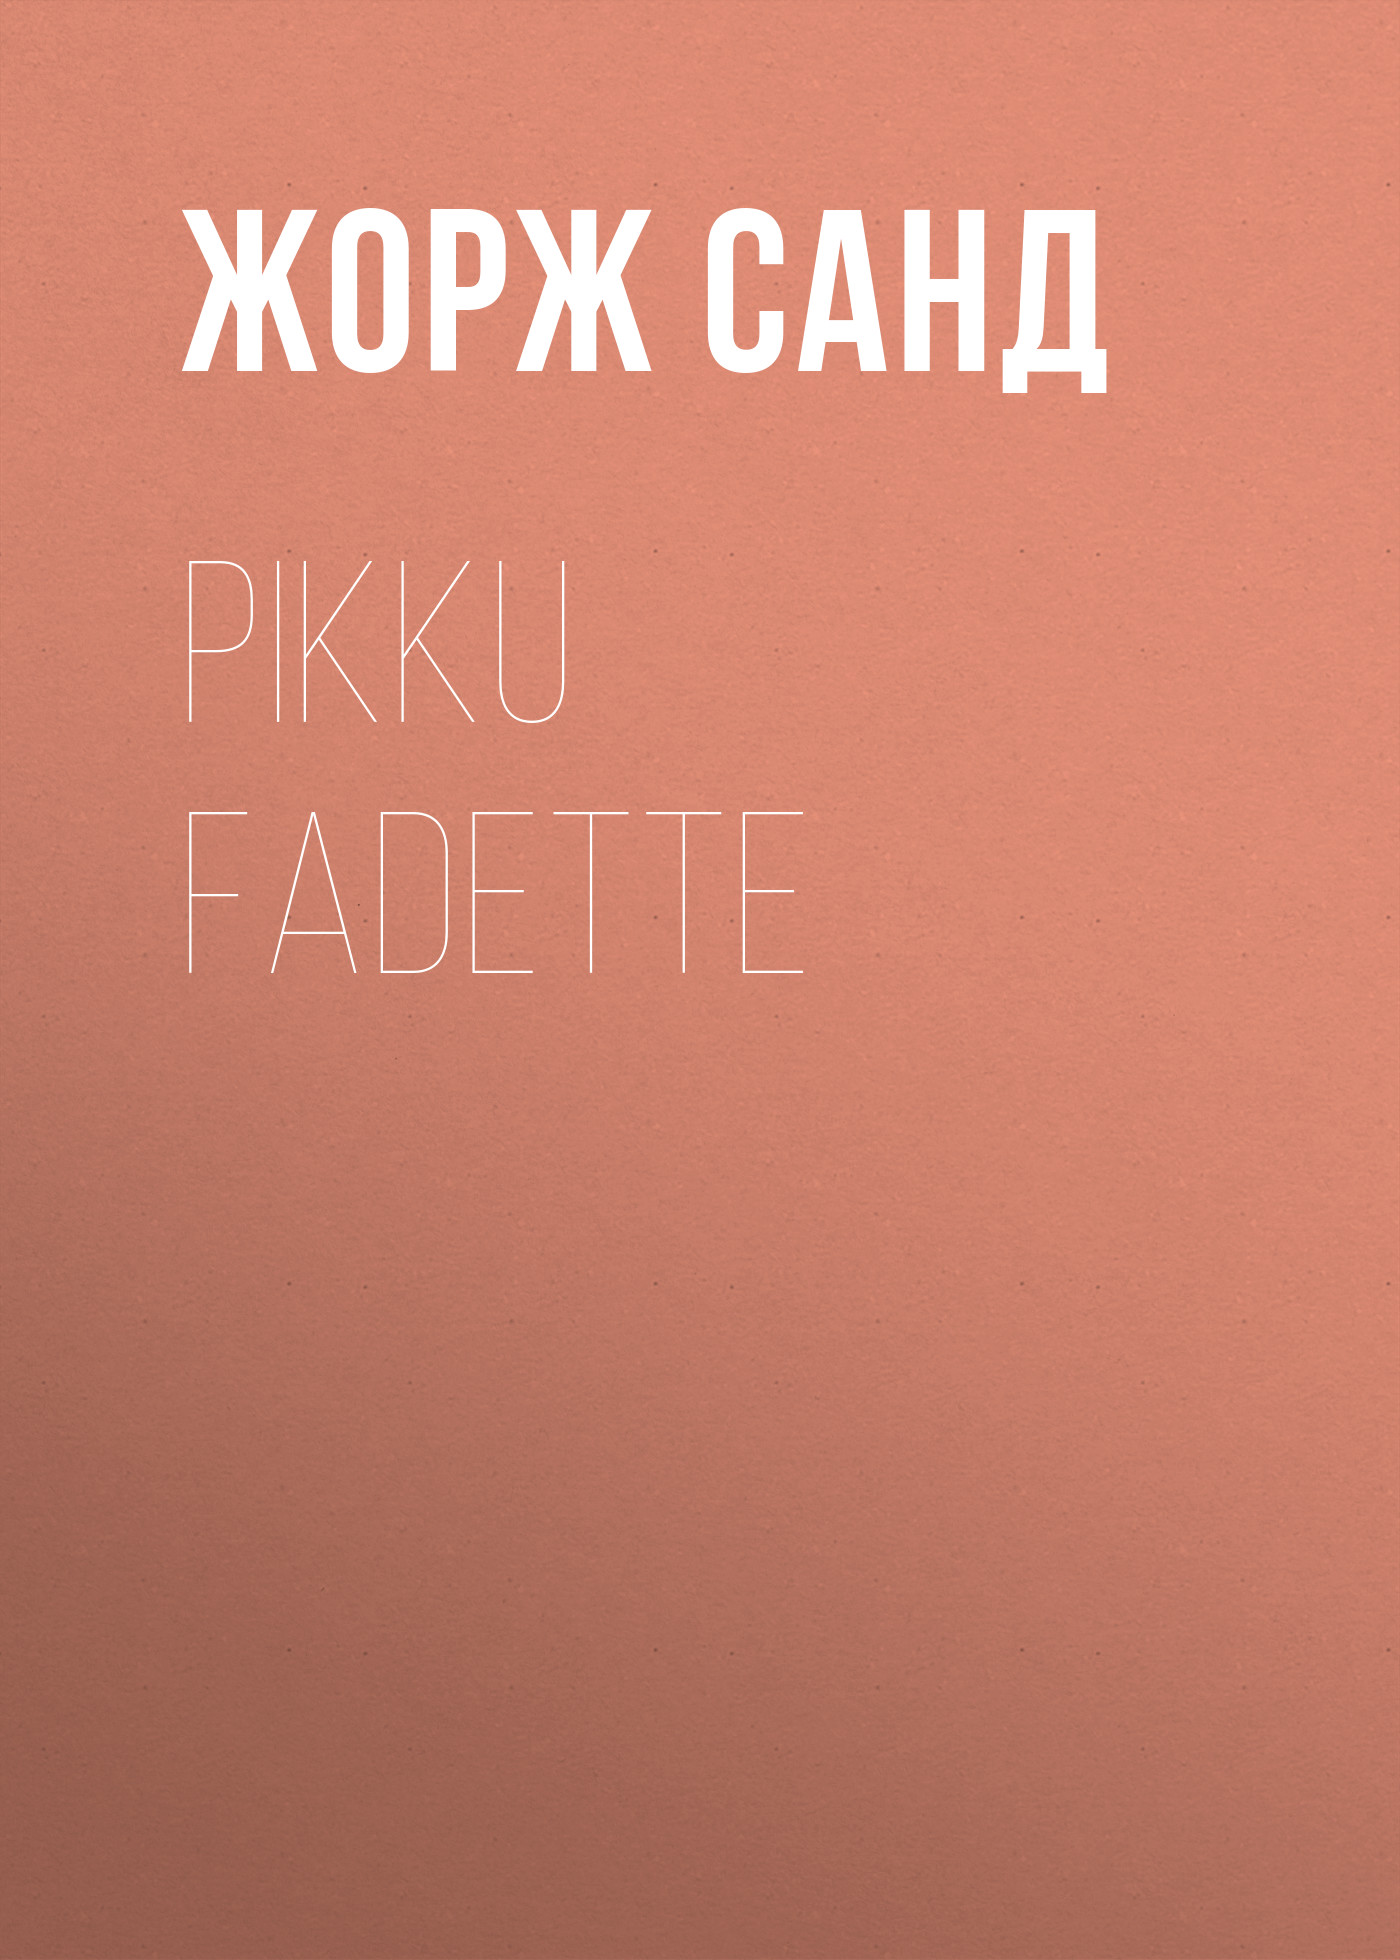 pikku fadette